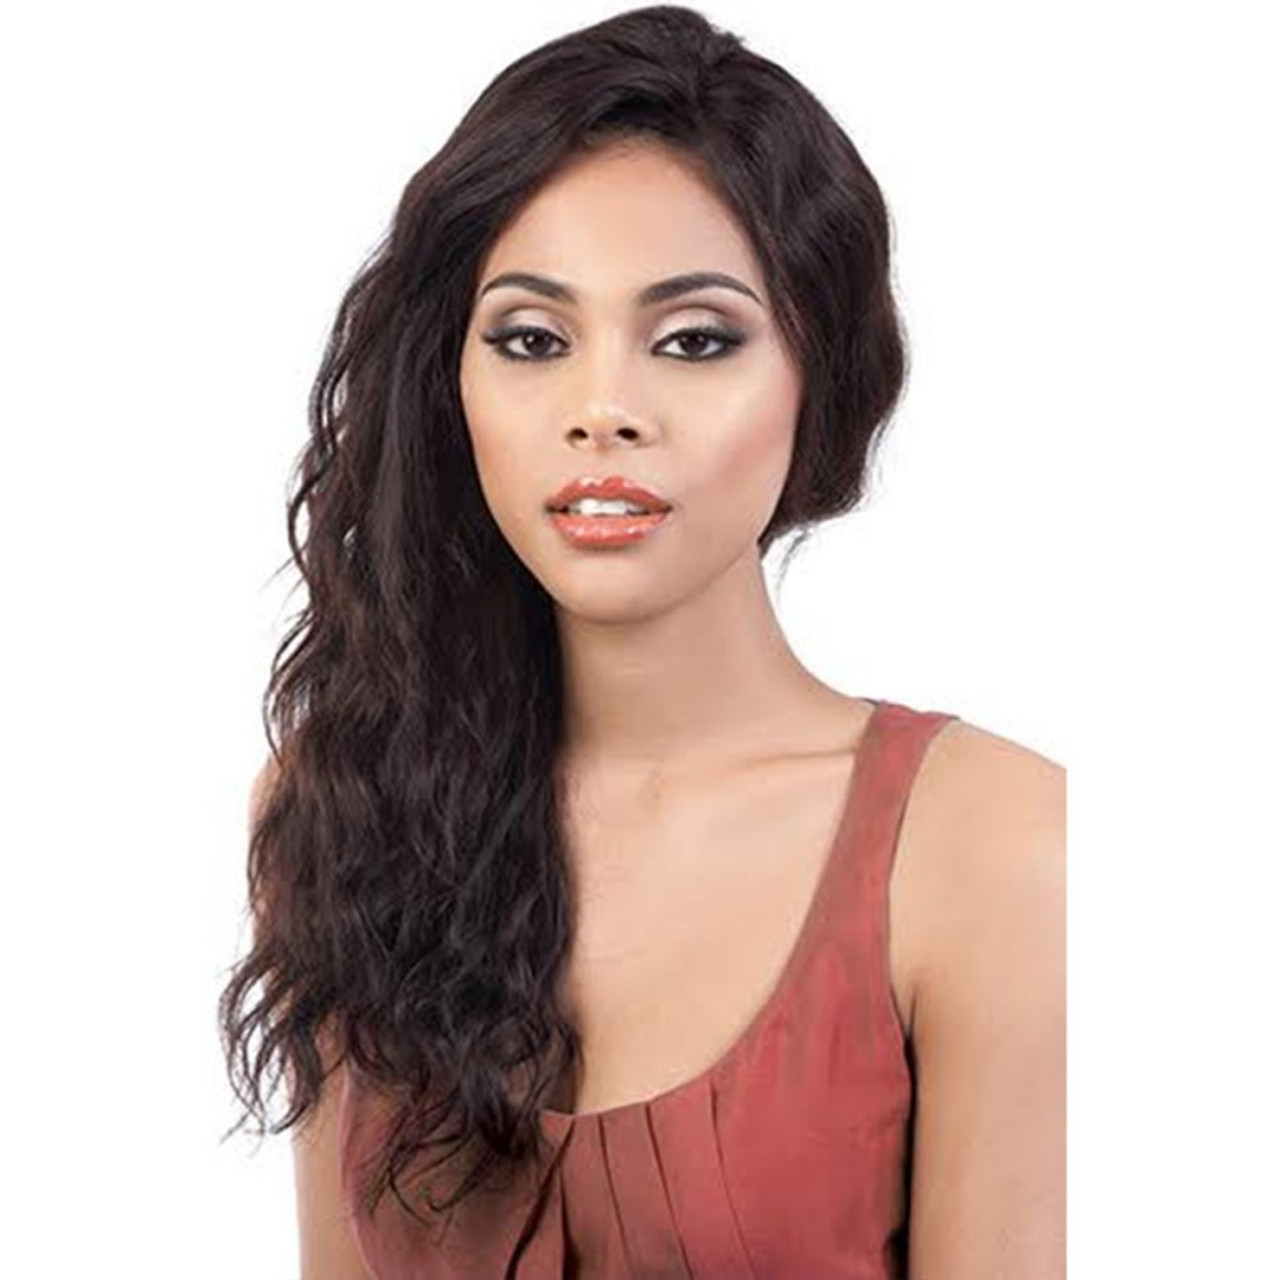 Beshe 100 Brazilian Remi Virgin Human Hair Silk Top Lace Wig Hbr